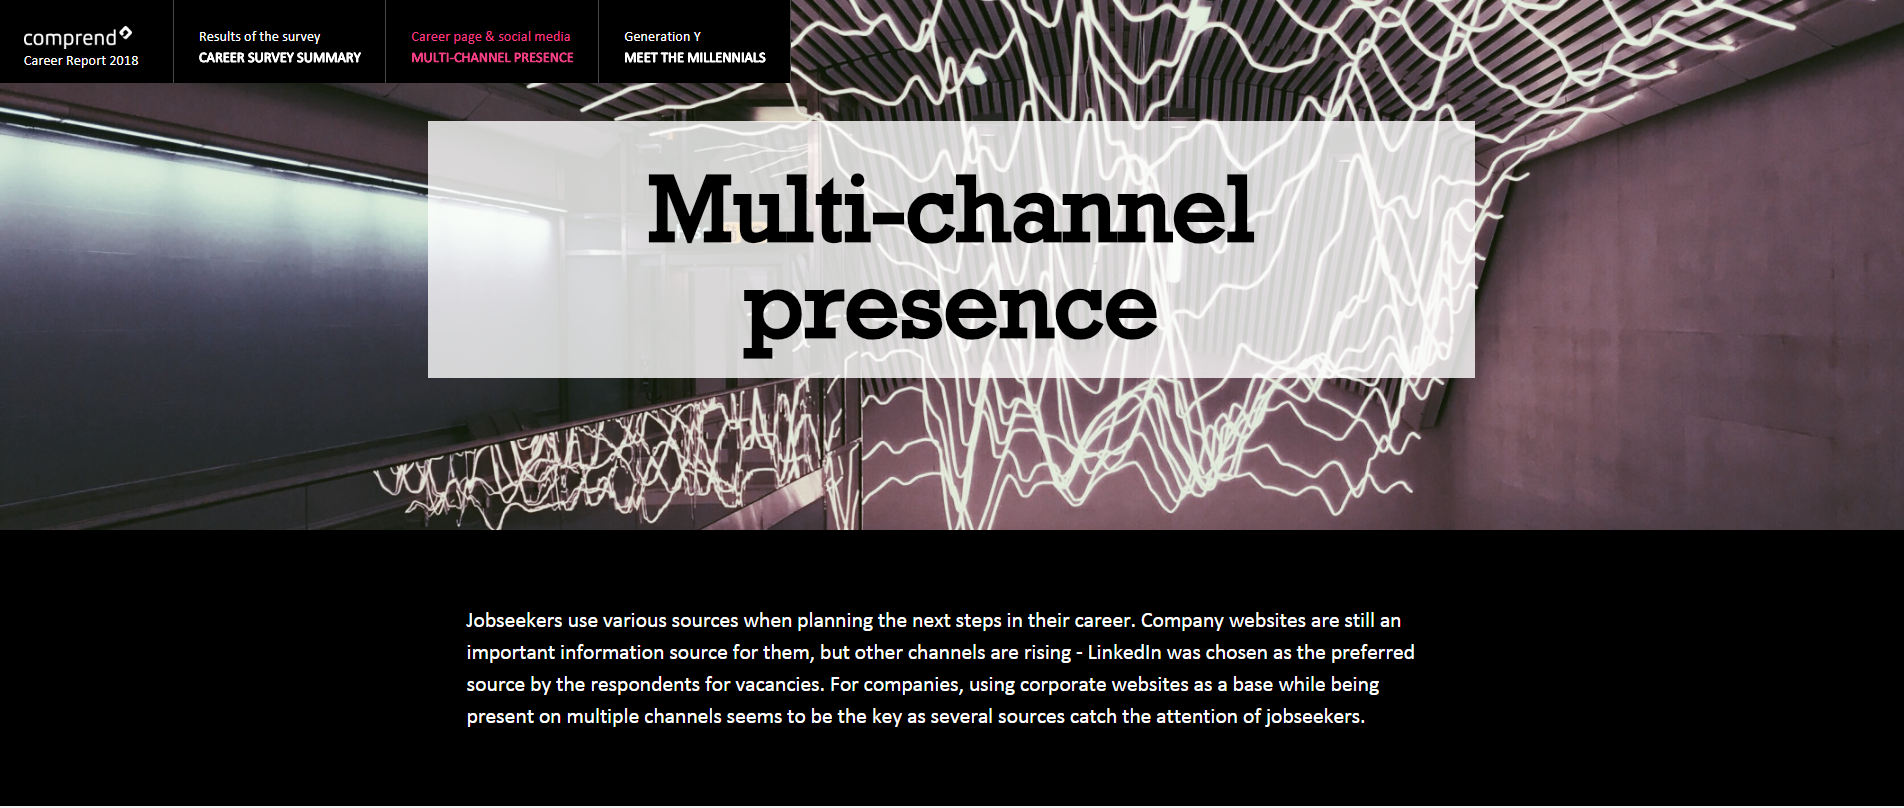 Multi-channel presence | Comprend